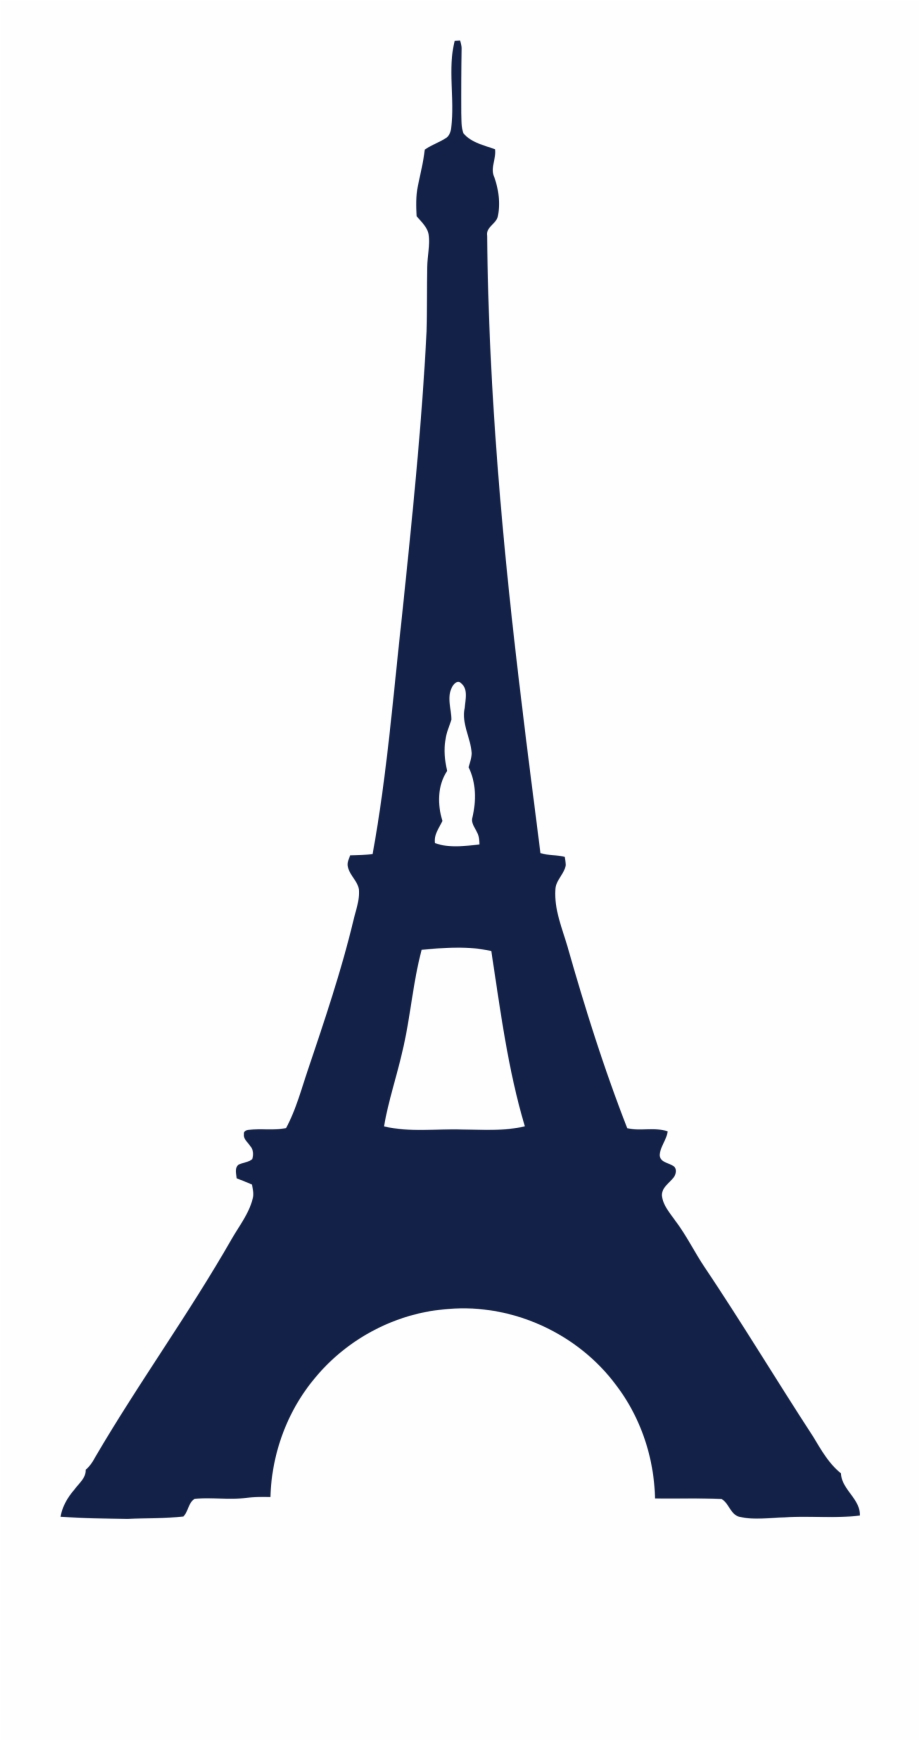 Eiffel francais png icon. Tower clipart basic